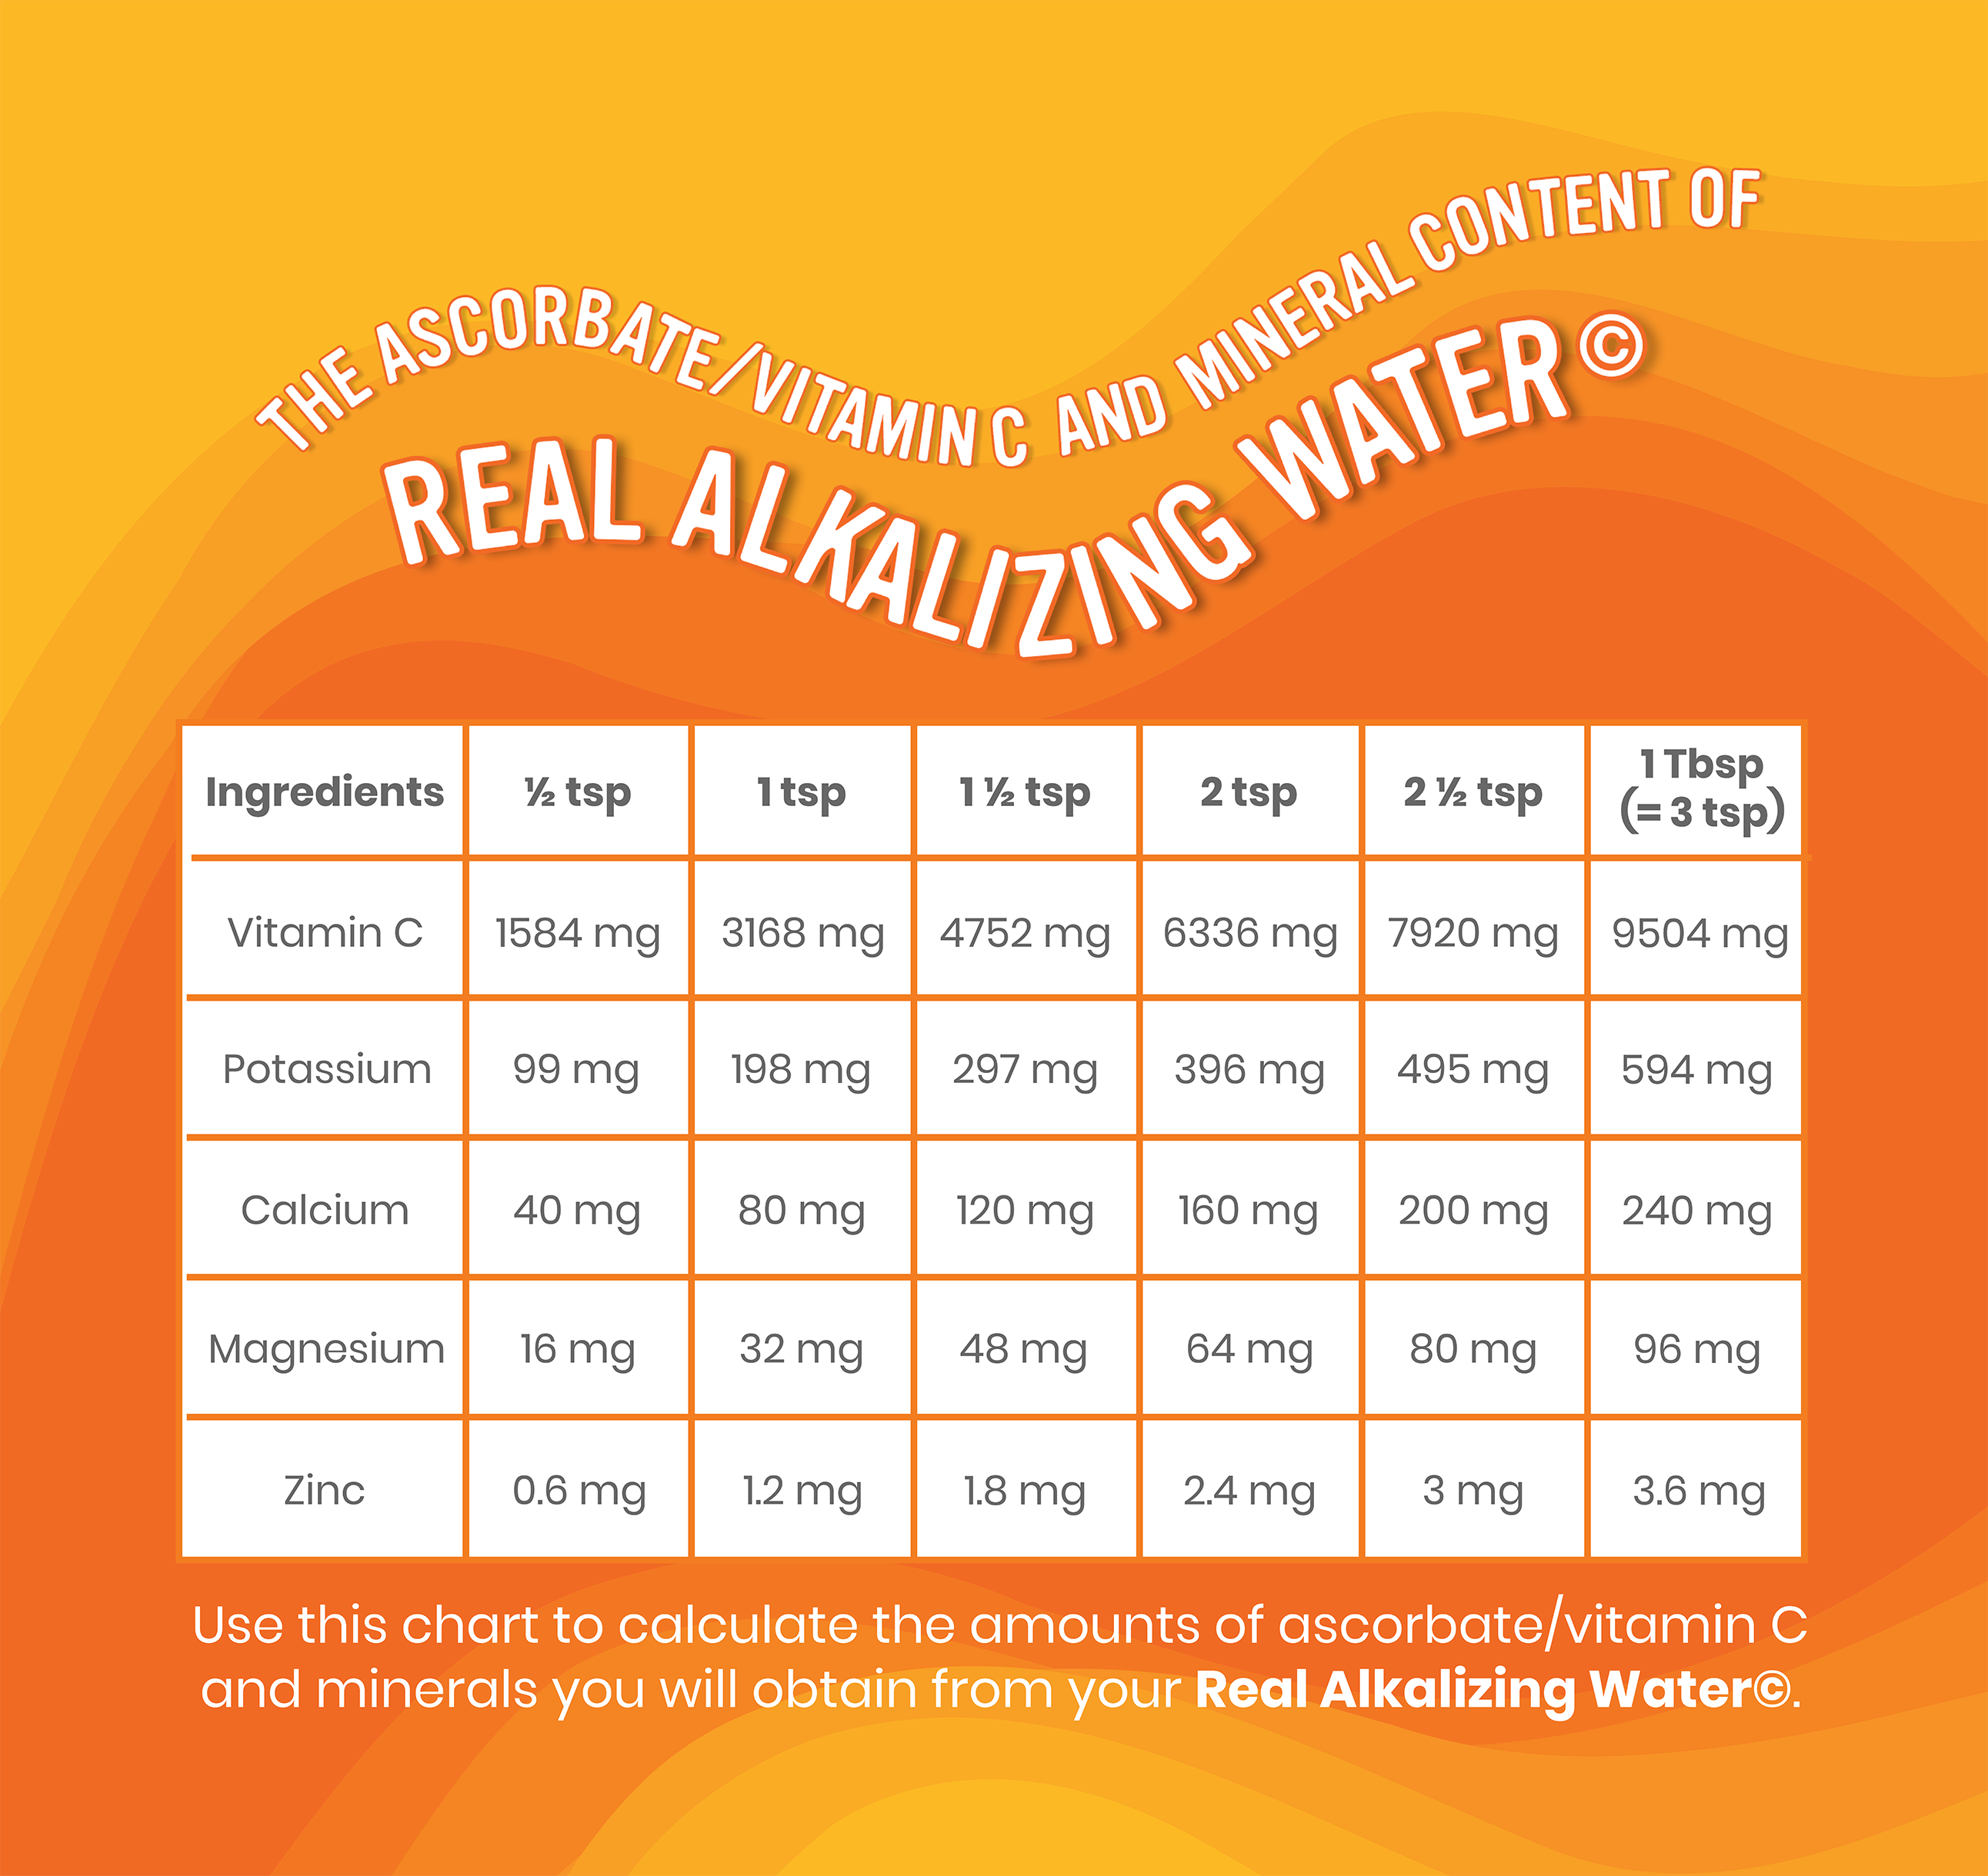 The Ascorbate Vitamin C and Mineral Content of Real Alkalizing Water